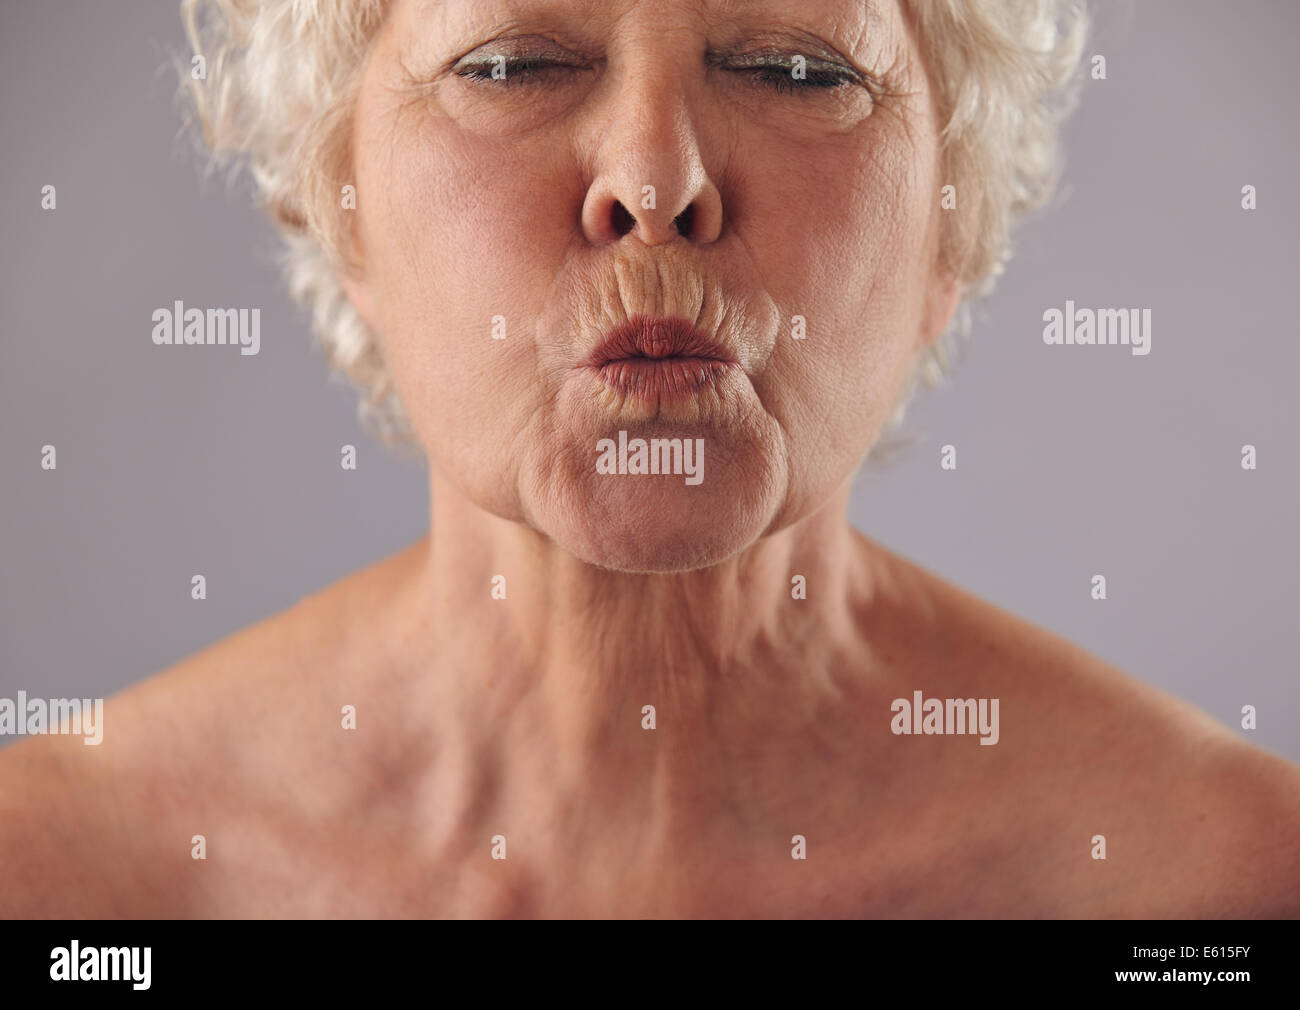 Cropped portrait of senior woman puckering lips. Mature female grimacing against grey background - Stock Image